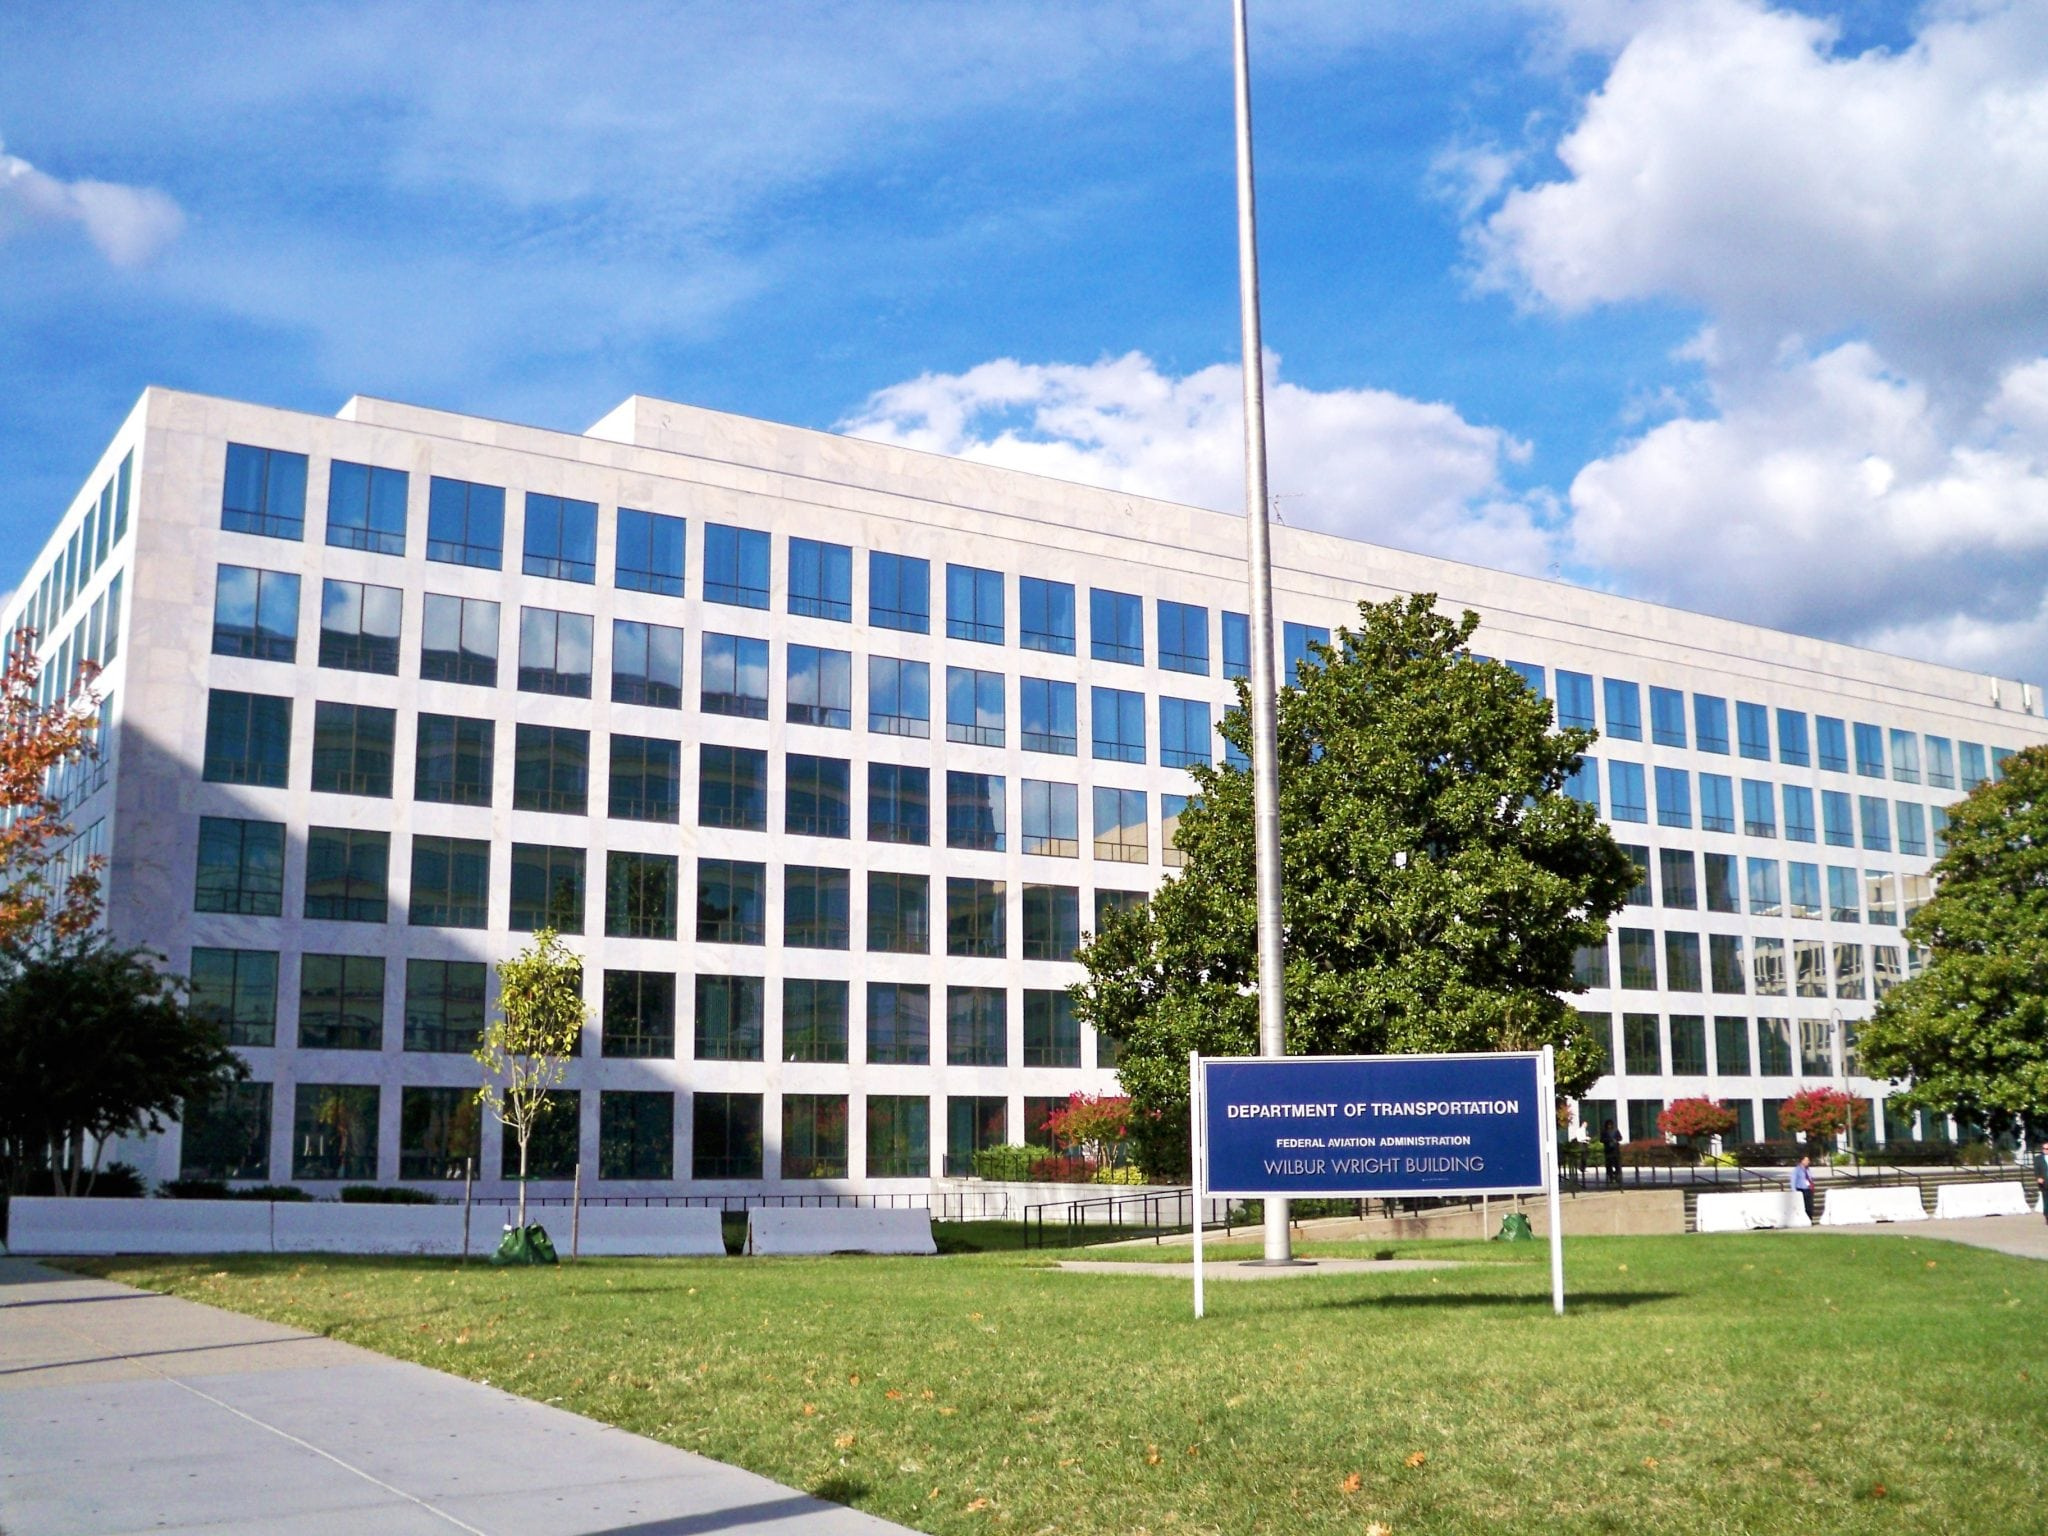 FAA Headquarters in Washington, D.C.